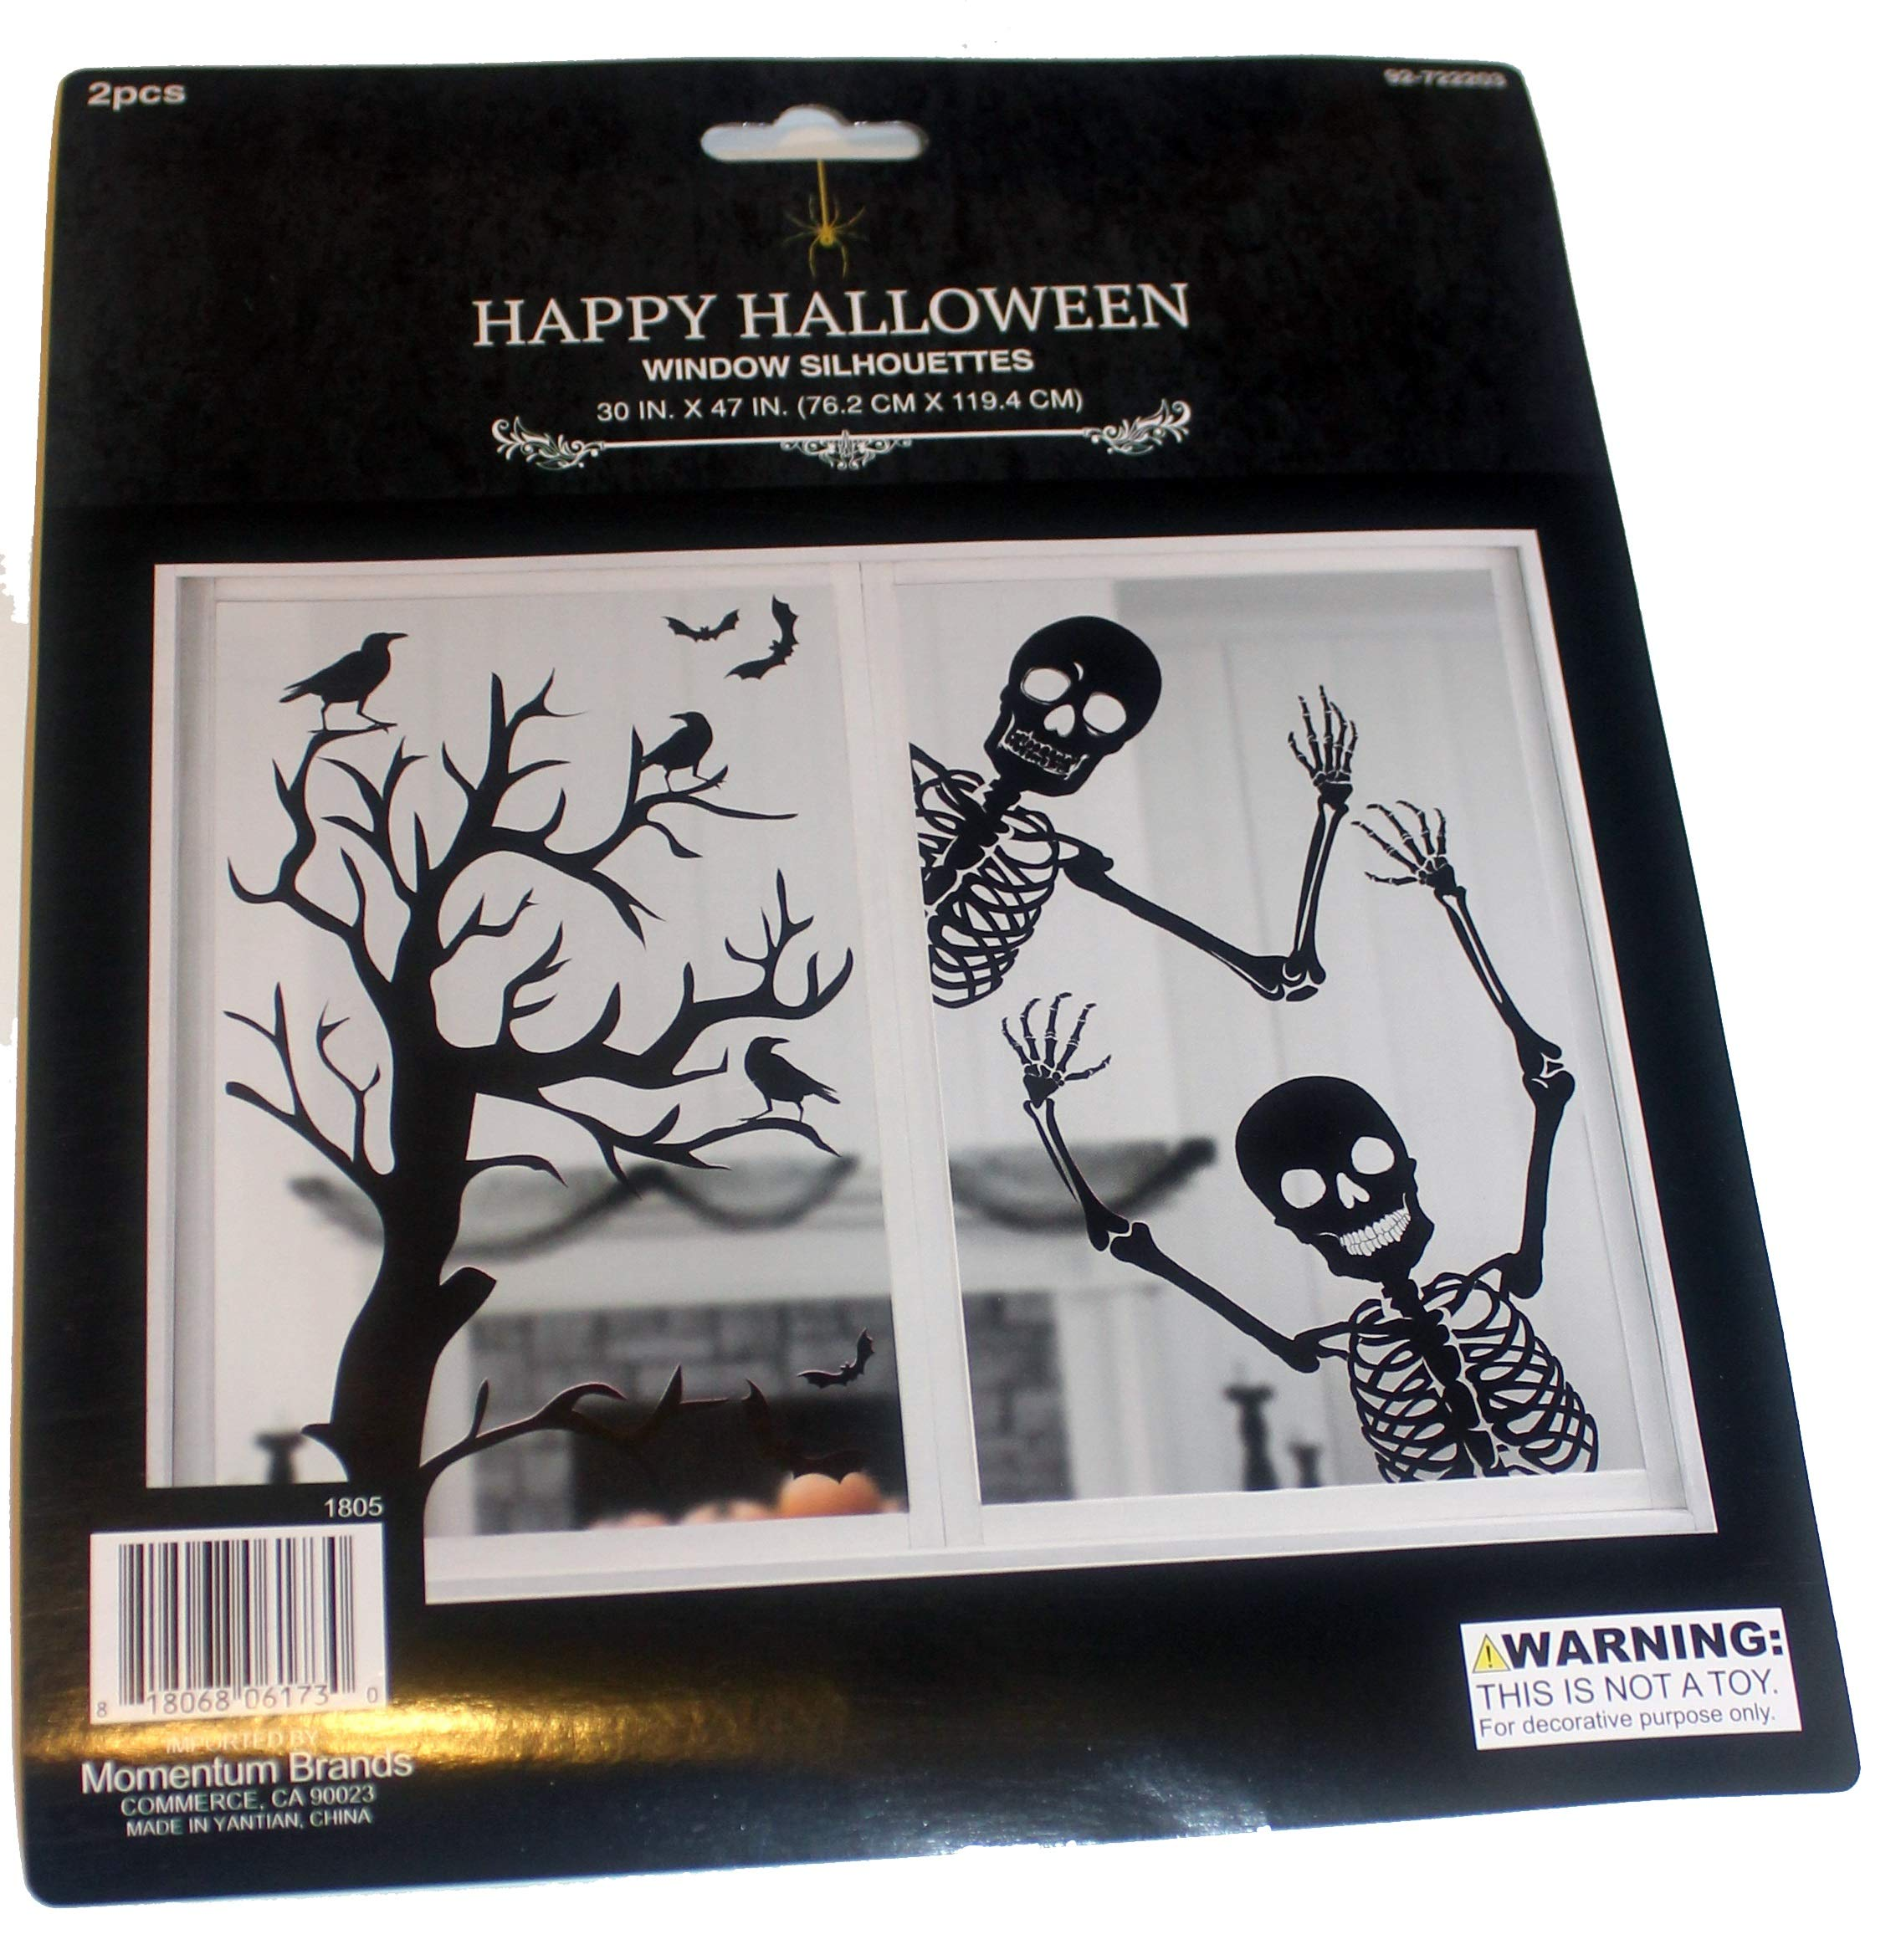 2 Pieces Window Silhouettes, Mural, Skeletons and Haunted Tree Halloween Decoration 30'' x 47''